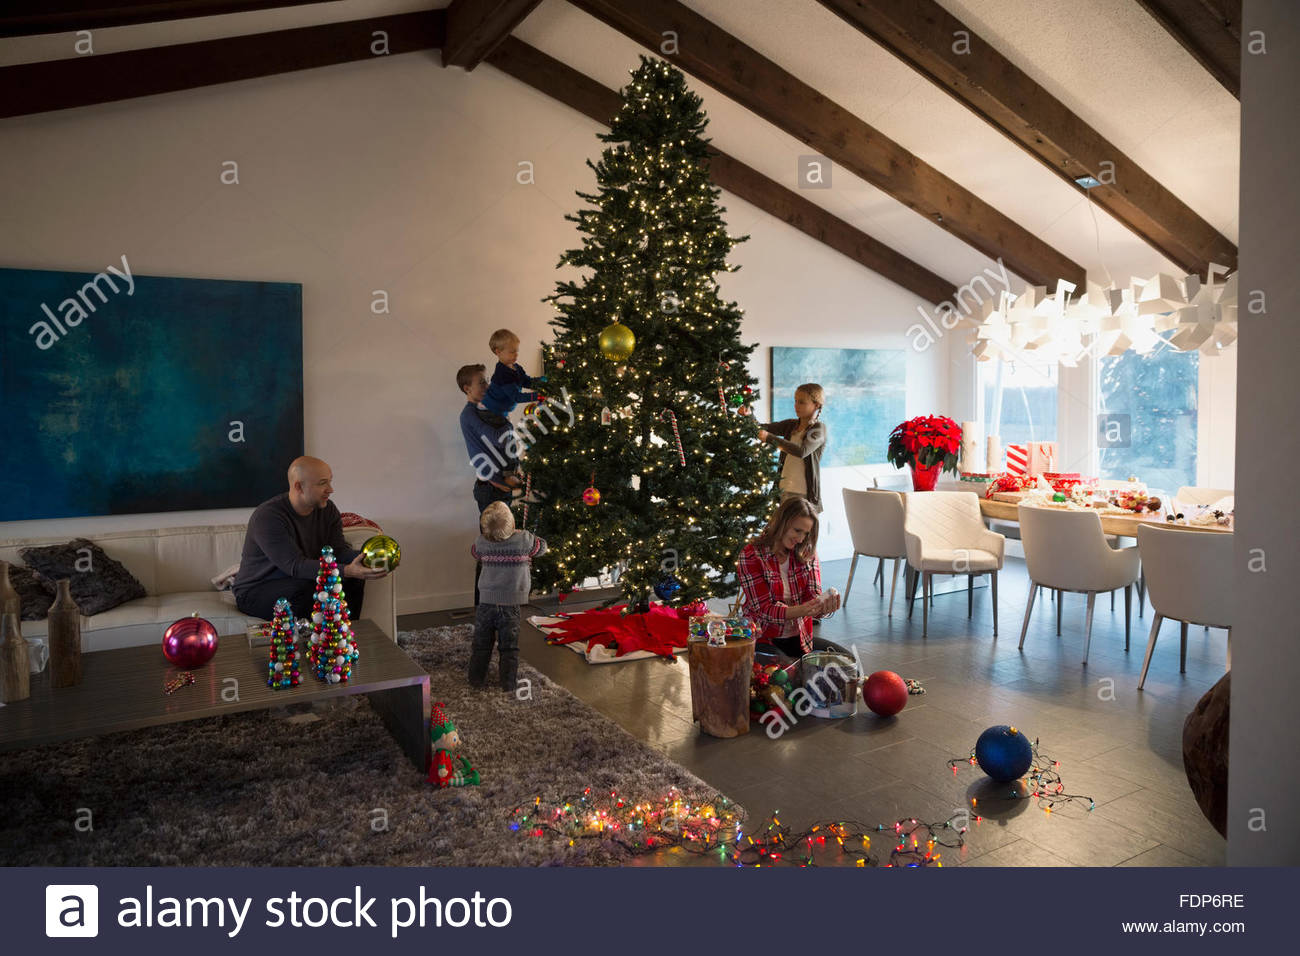 Family decorating Christmas tree in living room - Stock Image